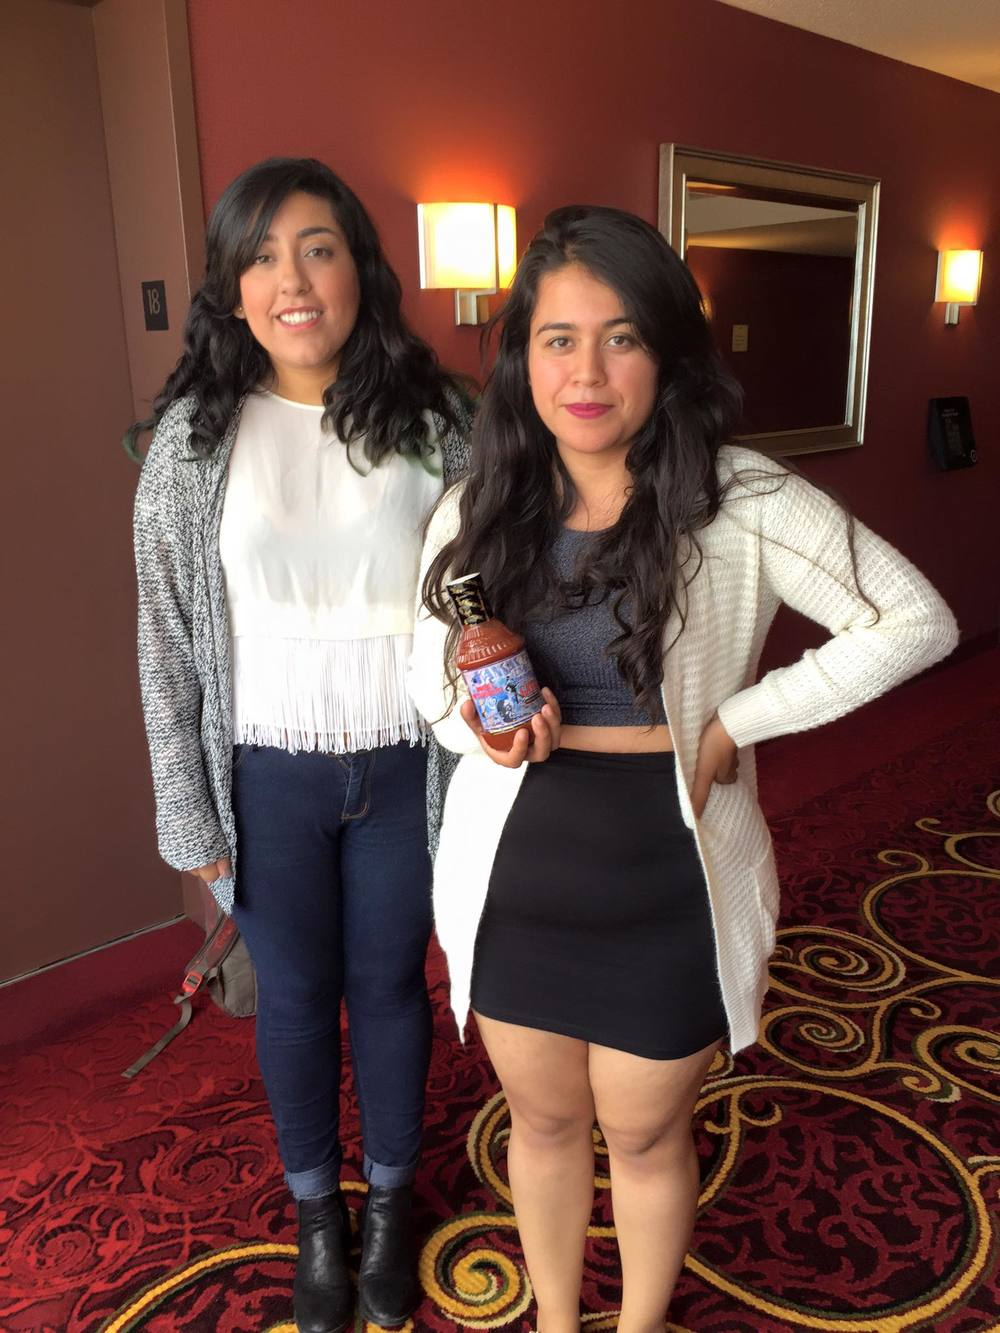 CSUF seniors Berenice Delgado and Gabriela Gonzalez are competing in the National Debate Tournament April 1-6 in New York.